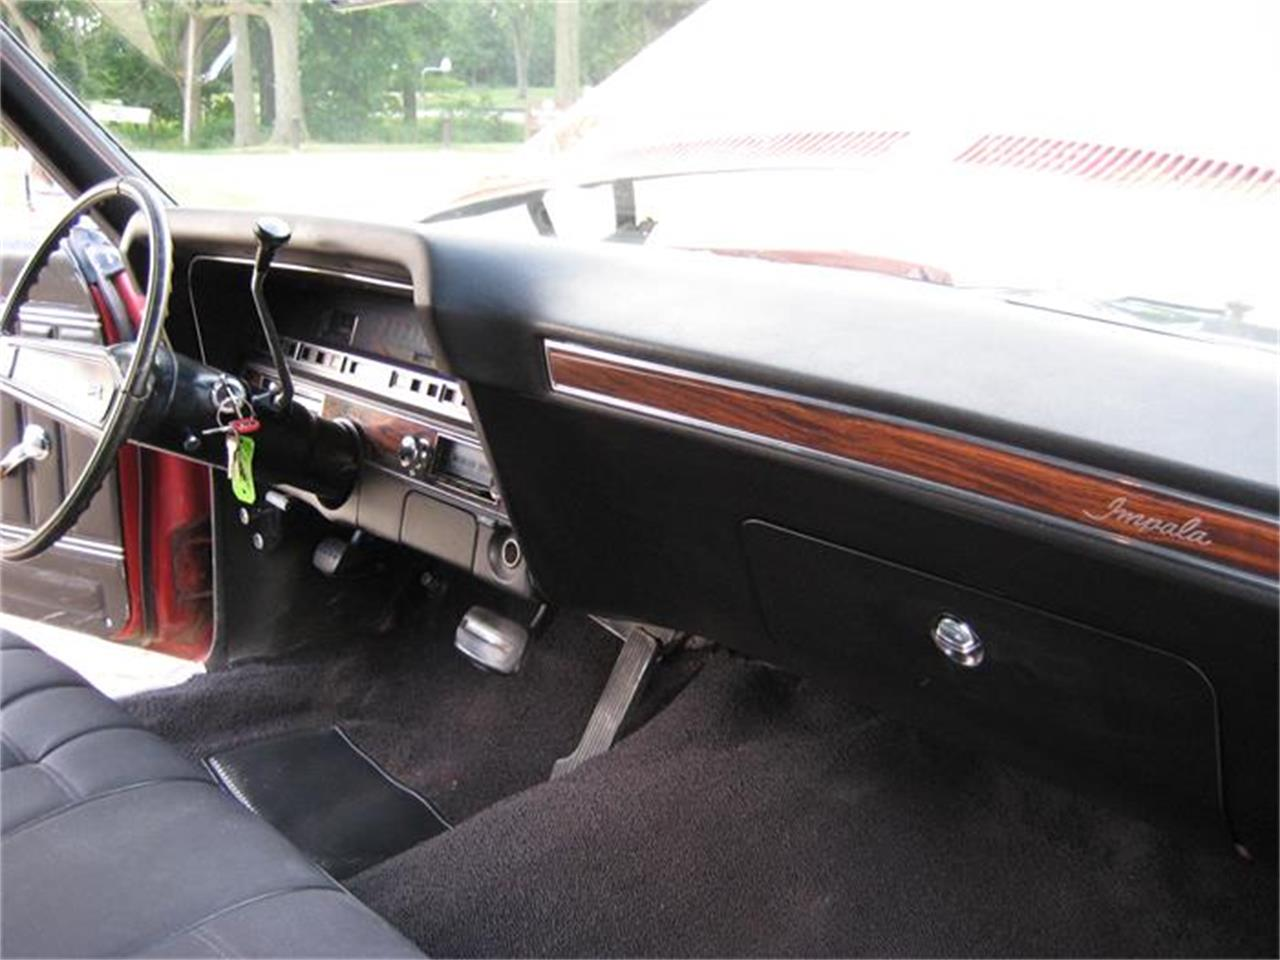 Large Picture of Classic '70 Impala located in Geneva Illinois - $22,995.00 - F45R